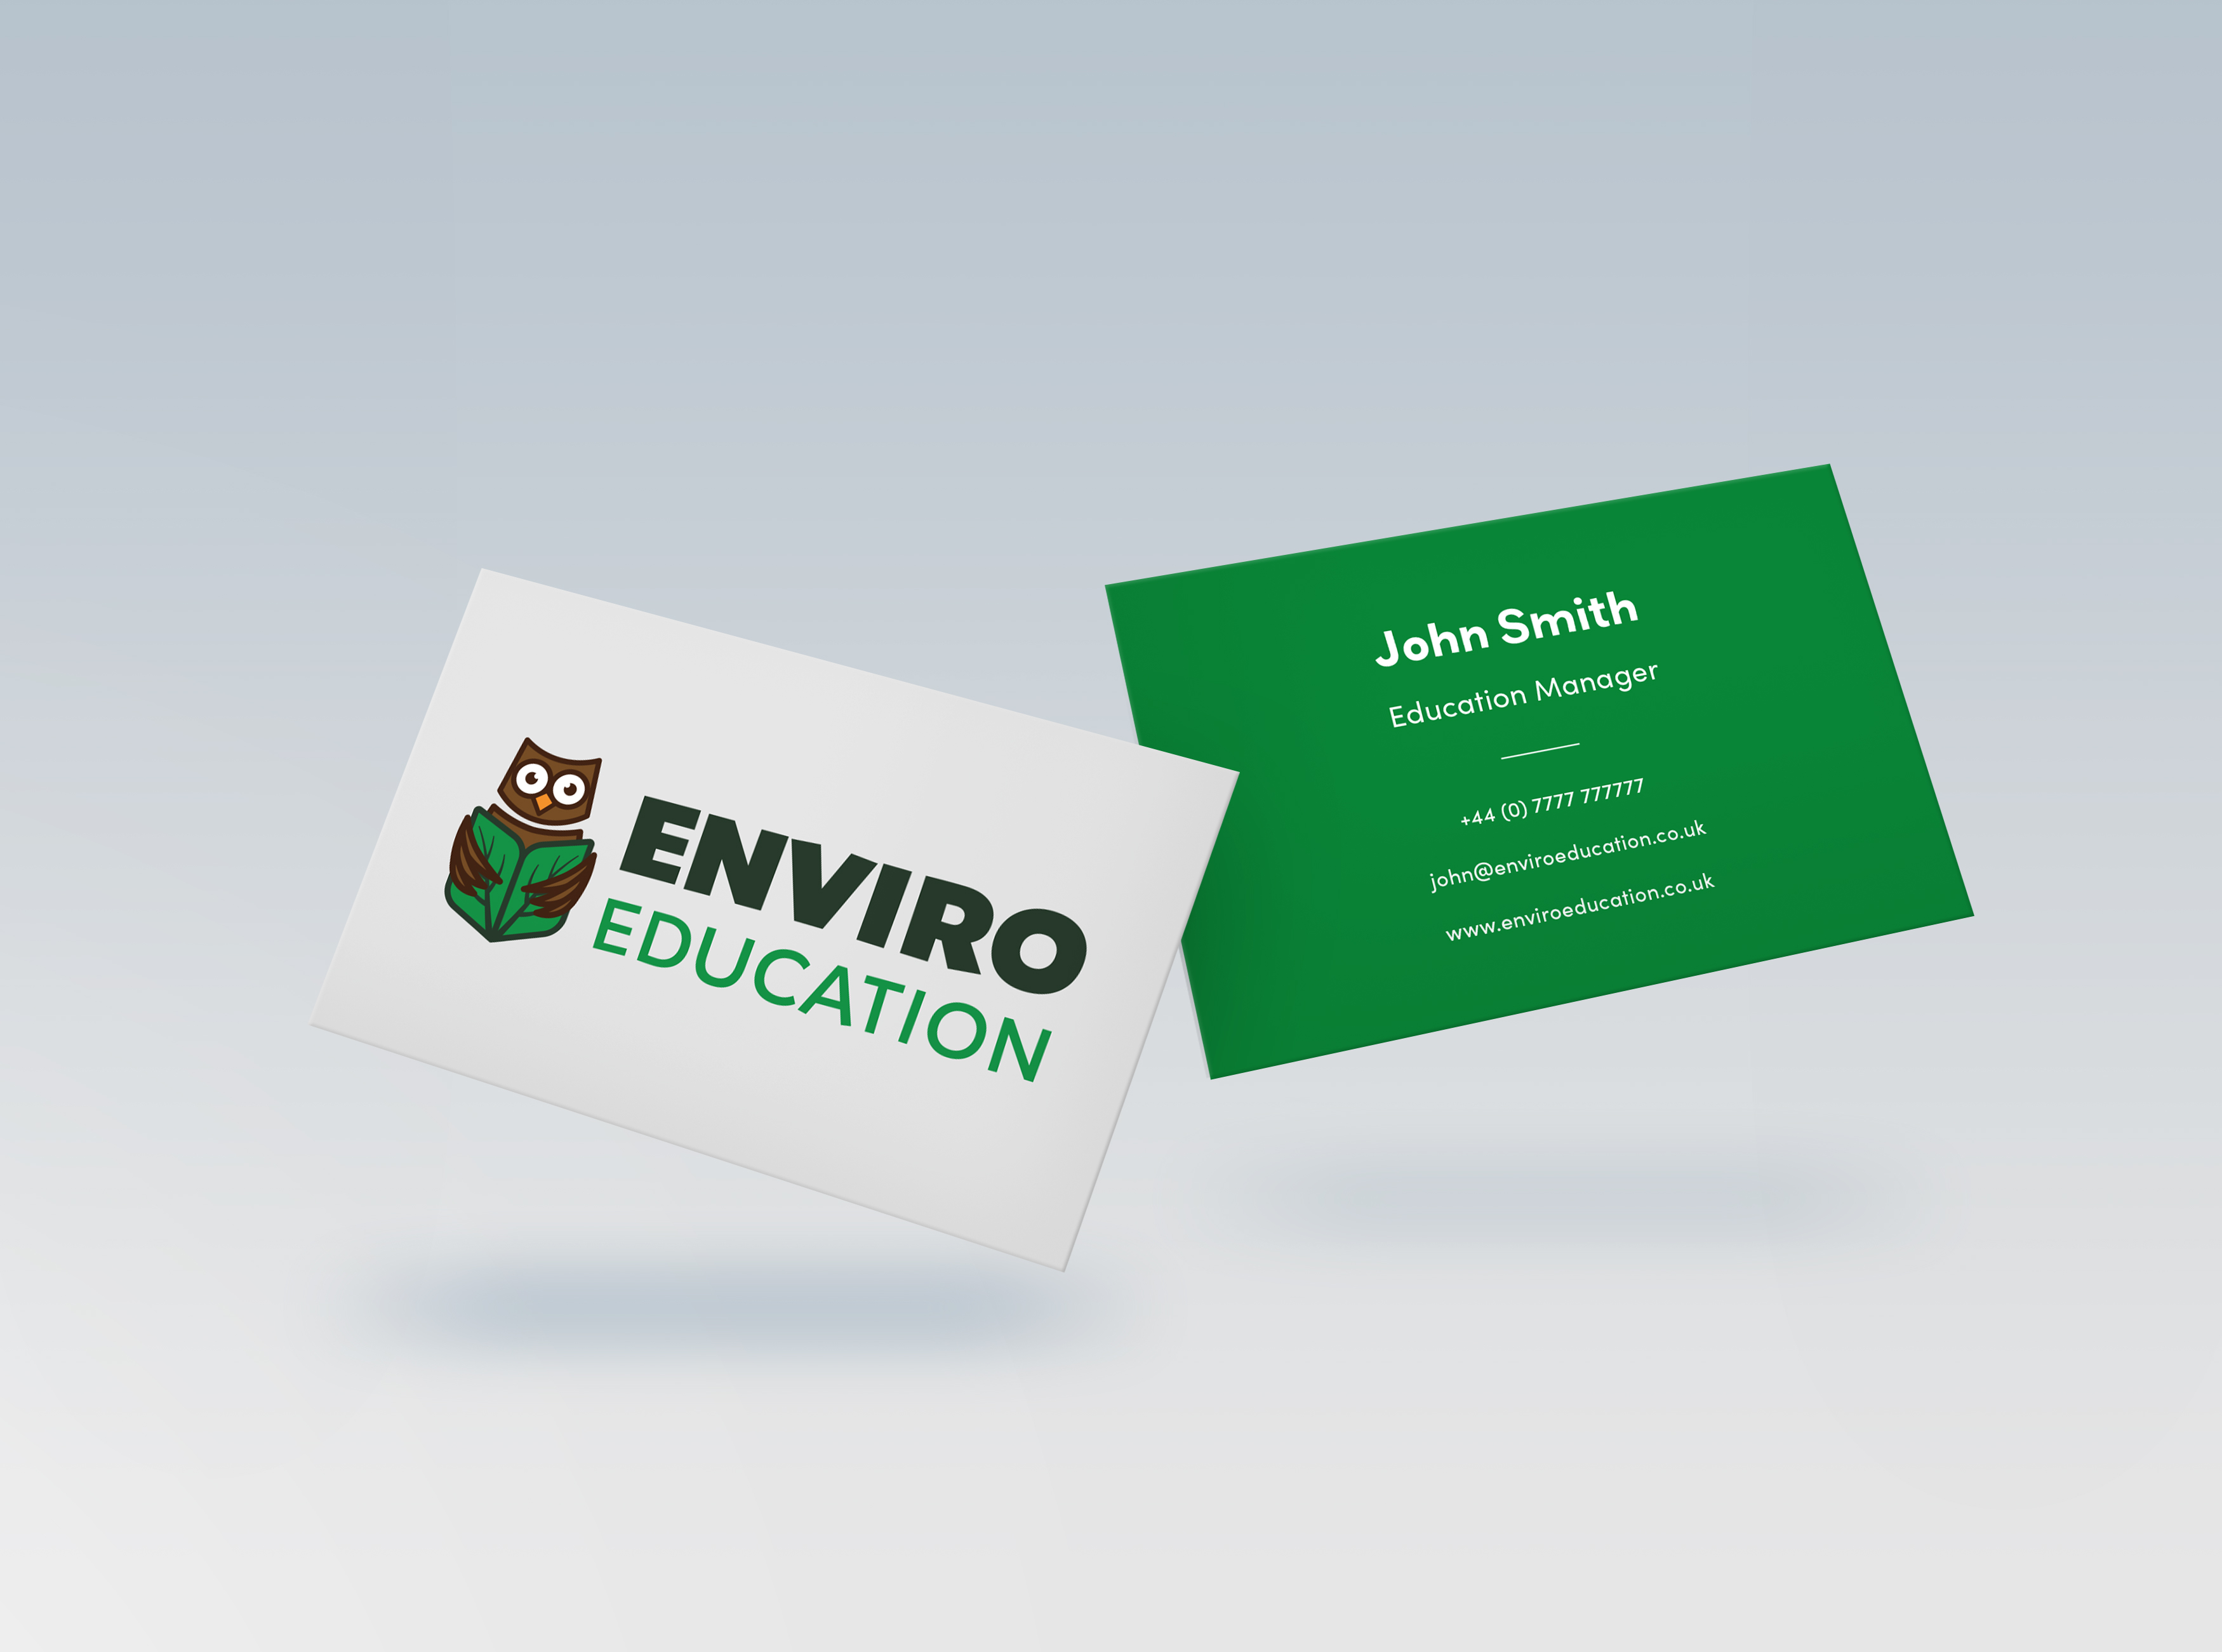 Two floating business cards from EnviroEducation